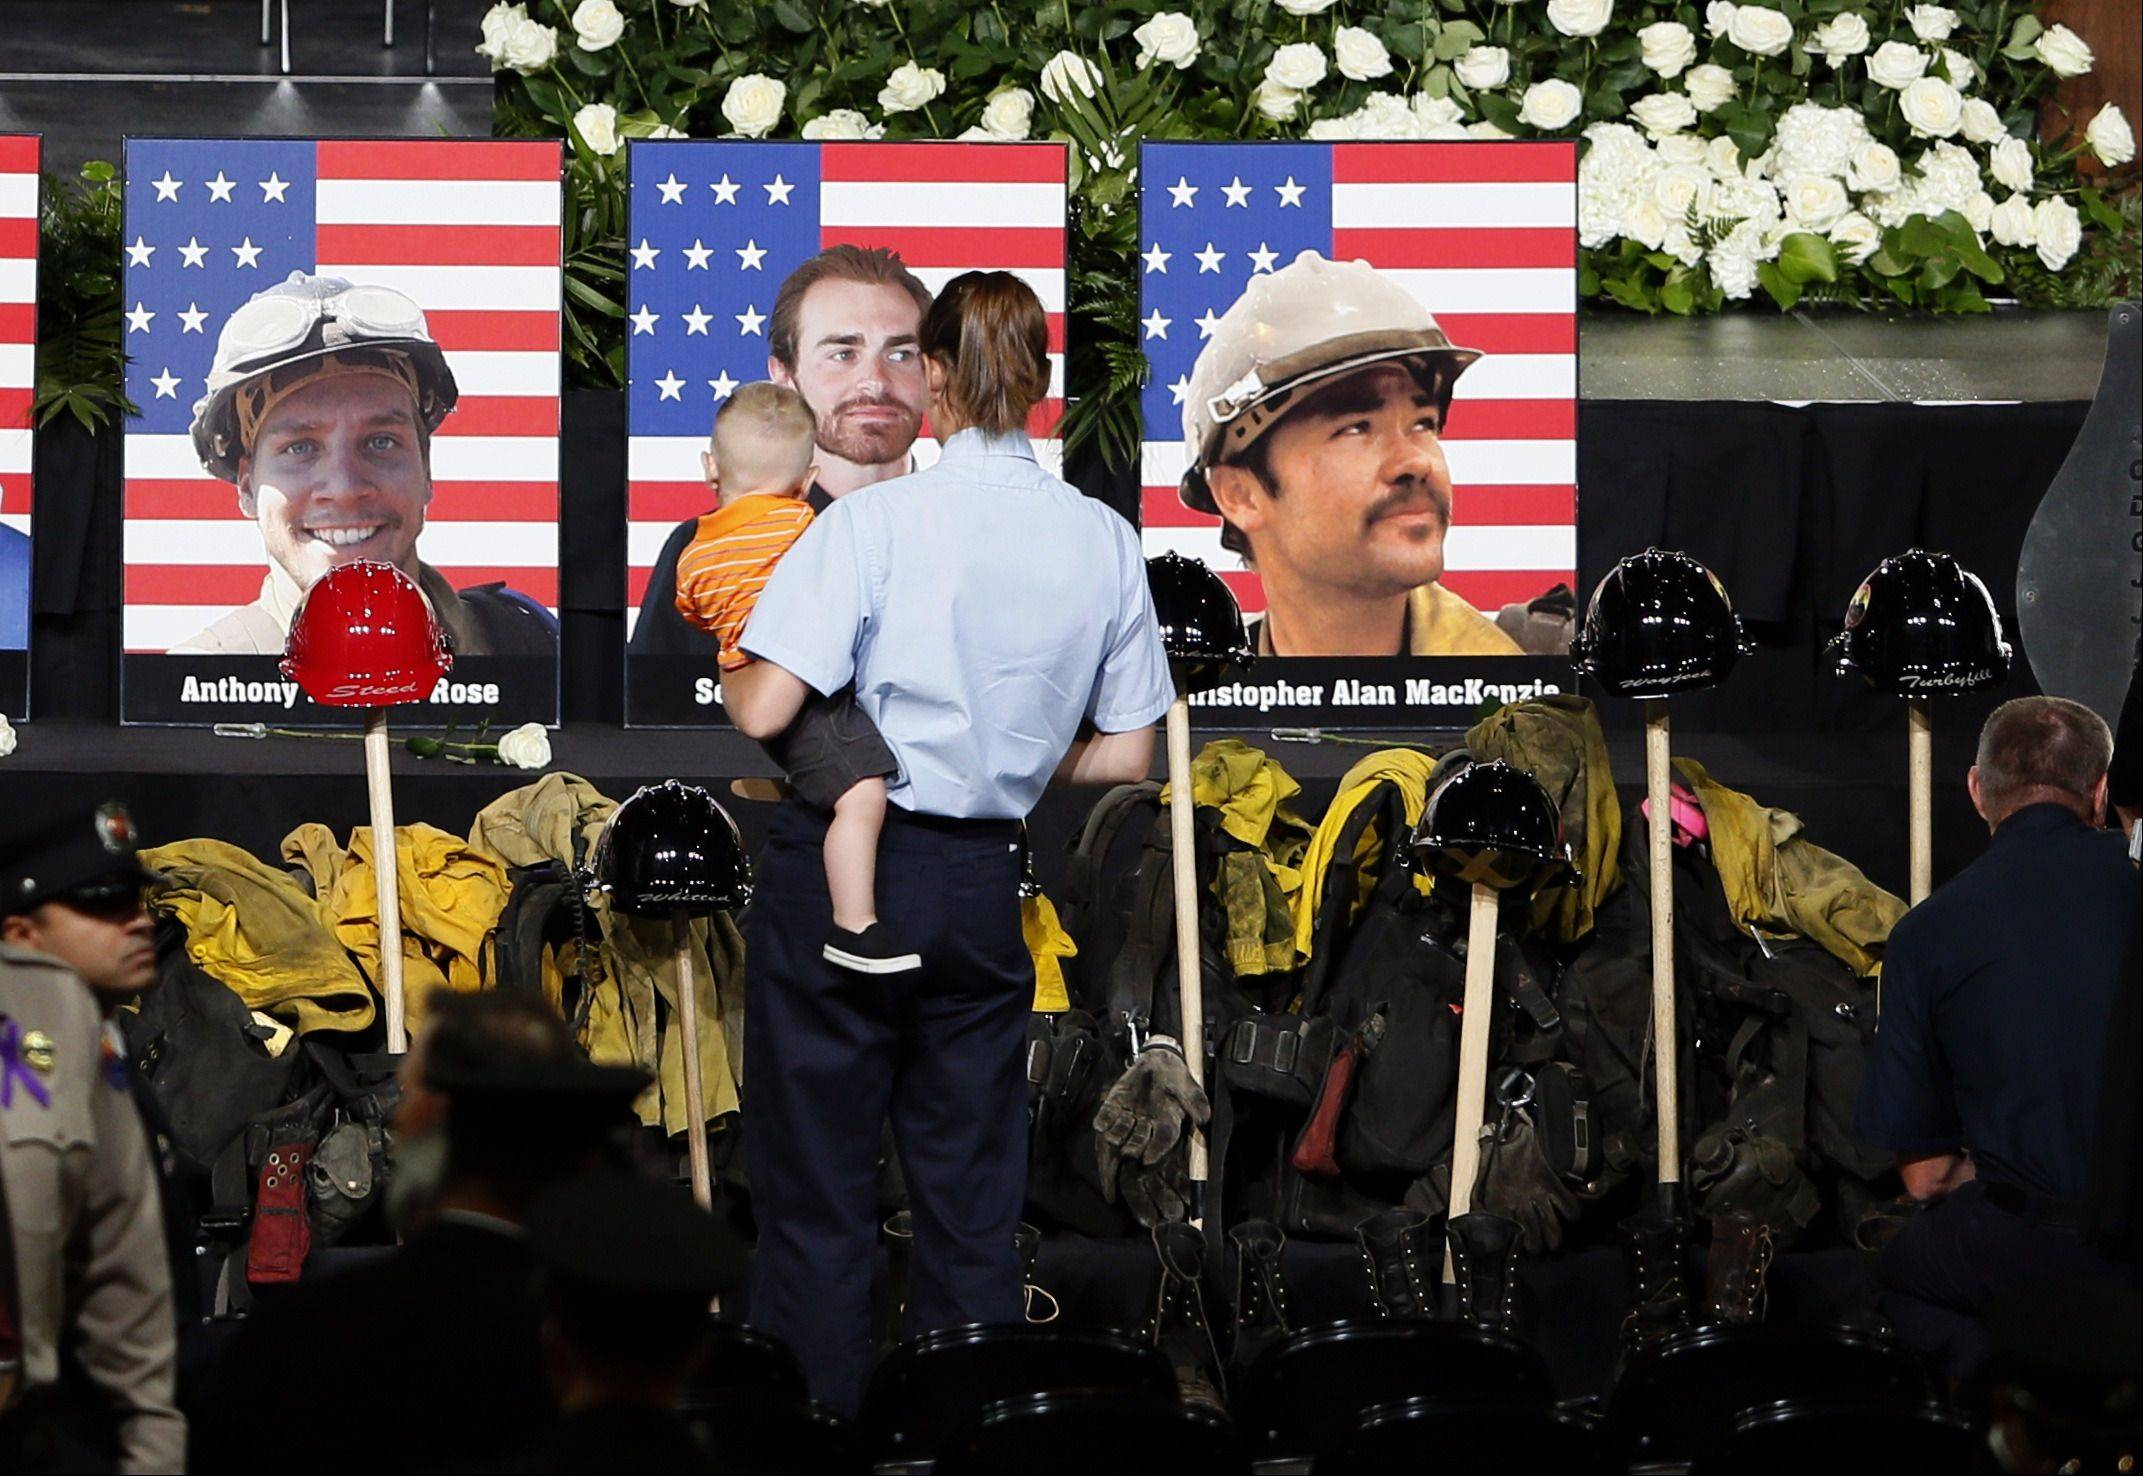 A woman pays her respects in front of photos of the fallen members of the Granite Mountain Hotshots, including former Beach Park resident Anthony Rose at left, at a memorial service in Prescott Valley, Arizona July 9, 2013.